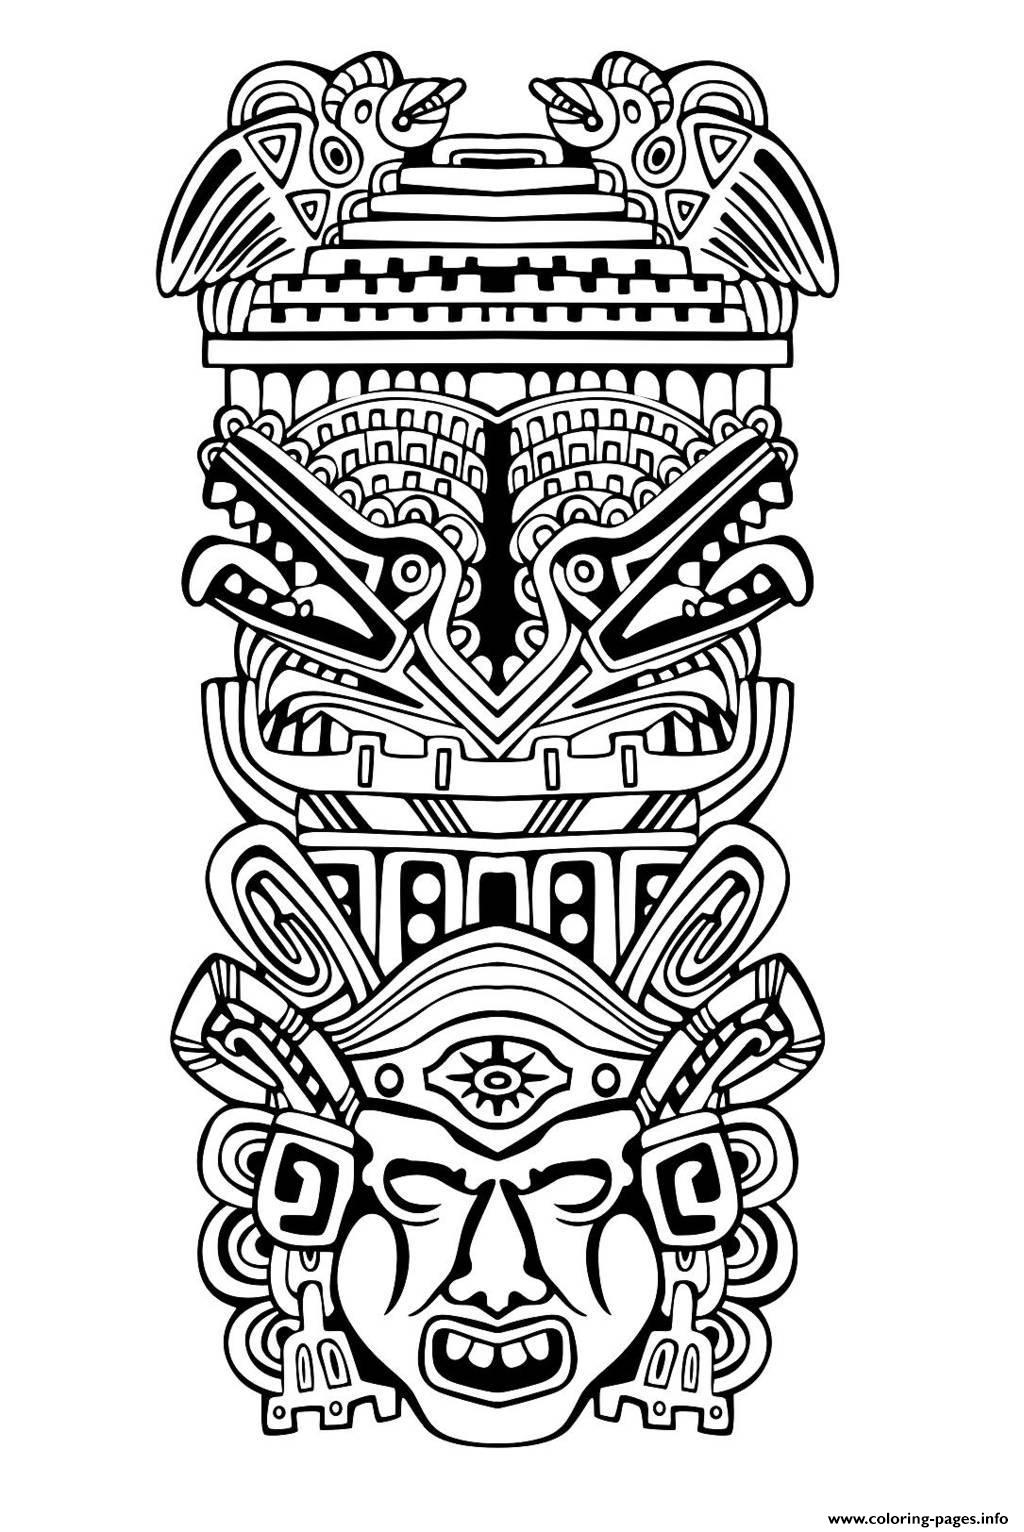 inca coloring pages inca coloring pages coloring home pages coloring inca